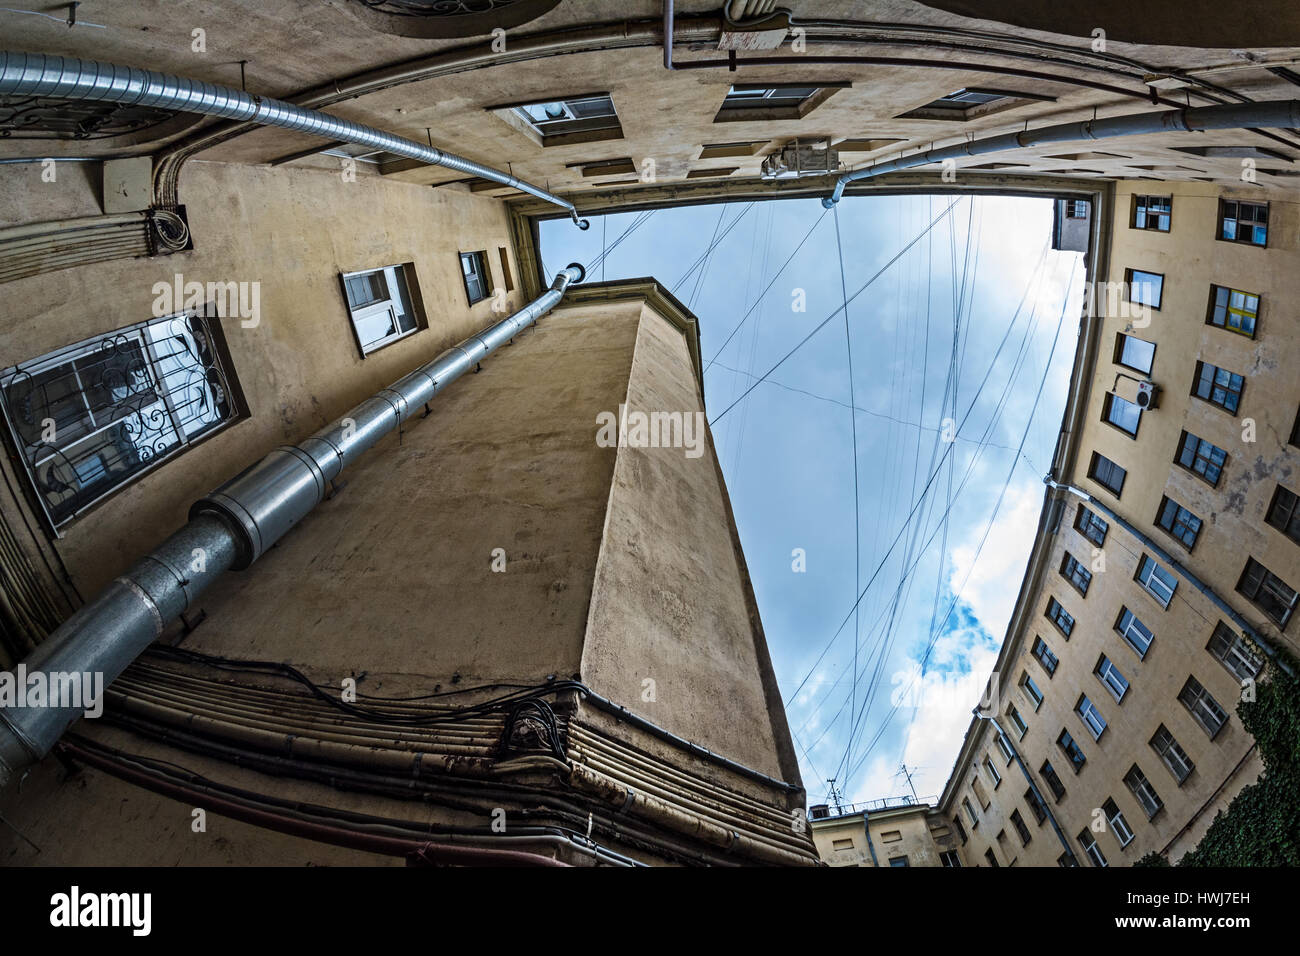 ST. PETERSBURG, RUSSIA - JULY 13, 2016: Yard-well kind of bottom-up, typical architecture of old St. Petersburg, - Stock Image